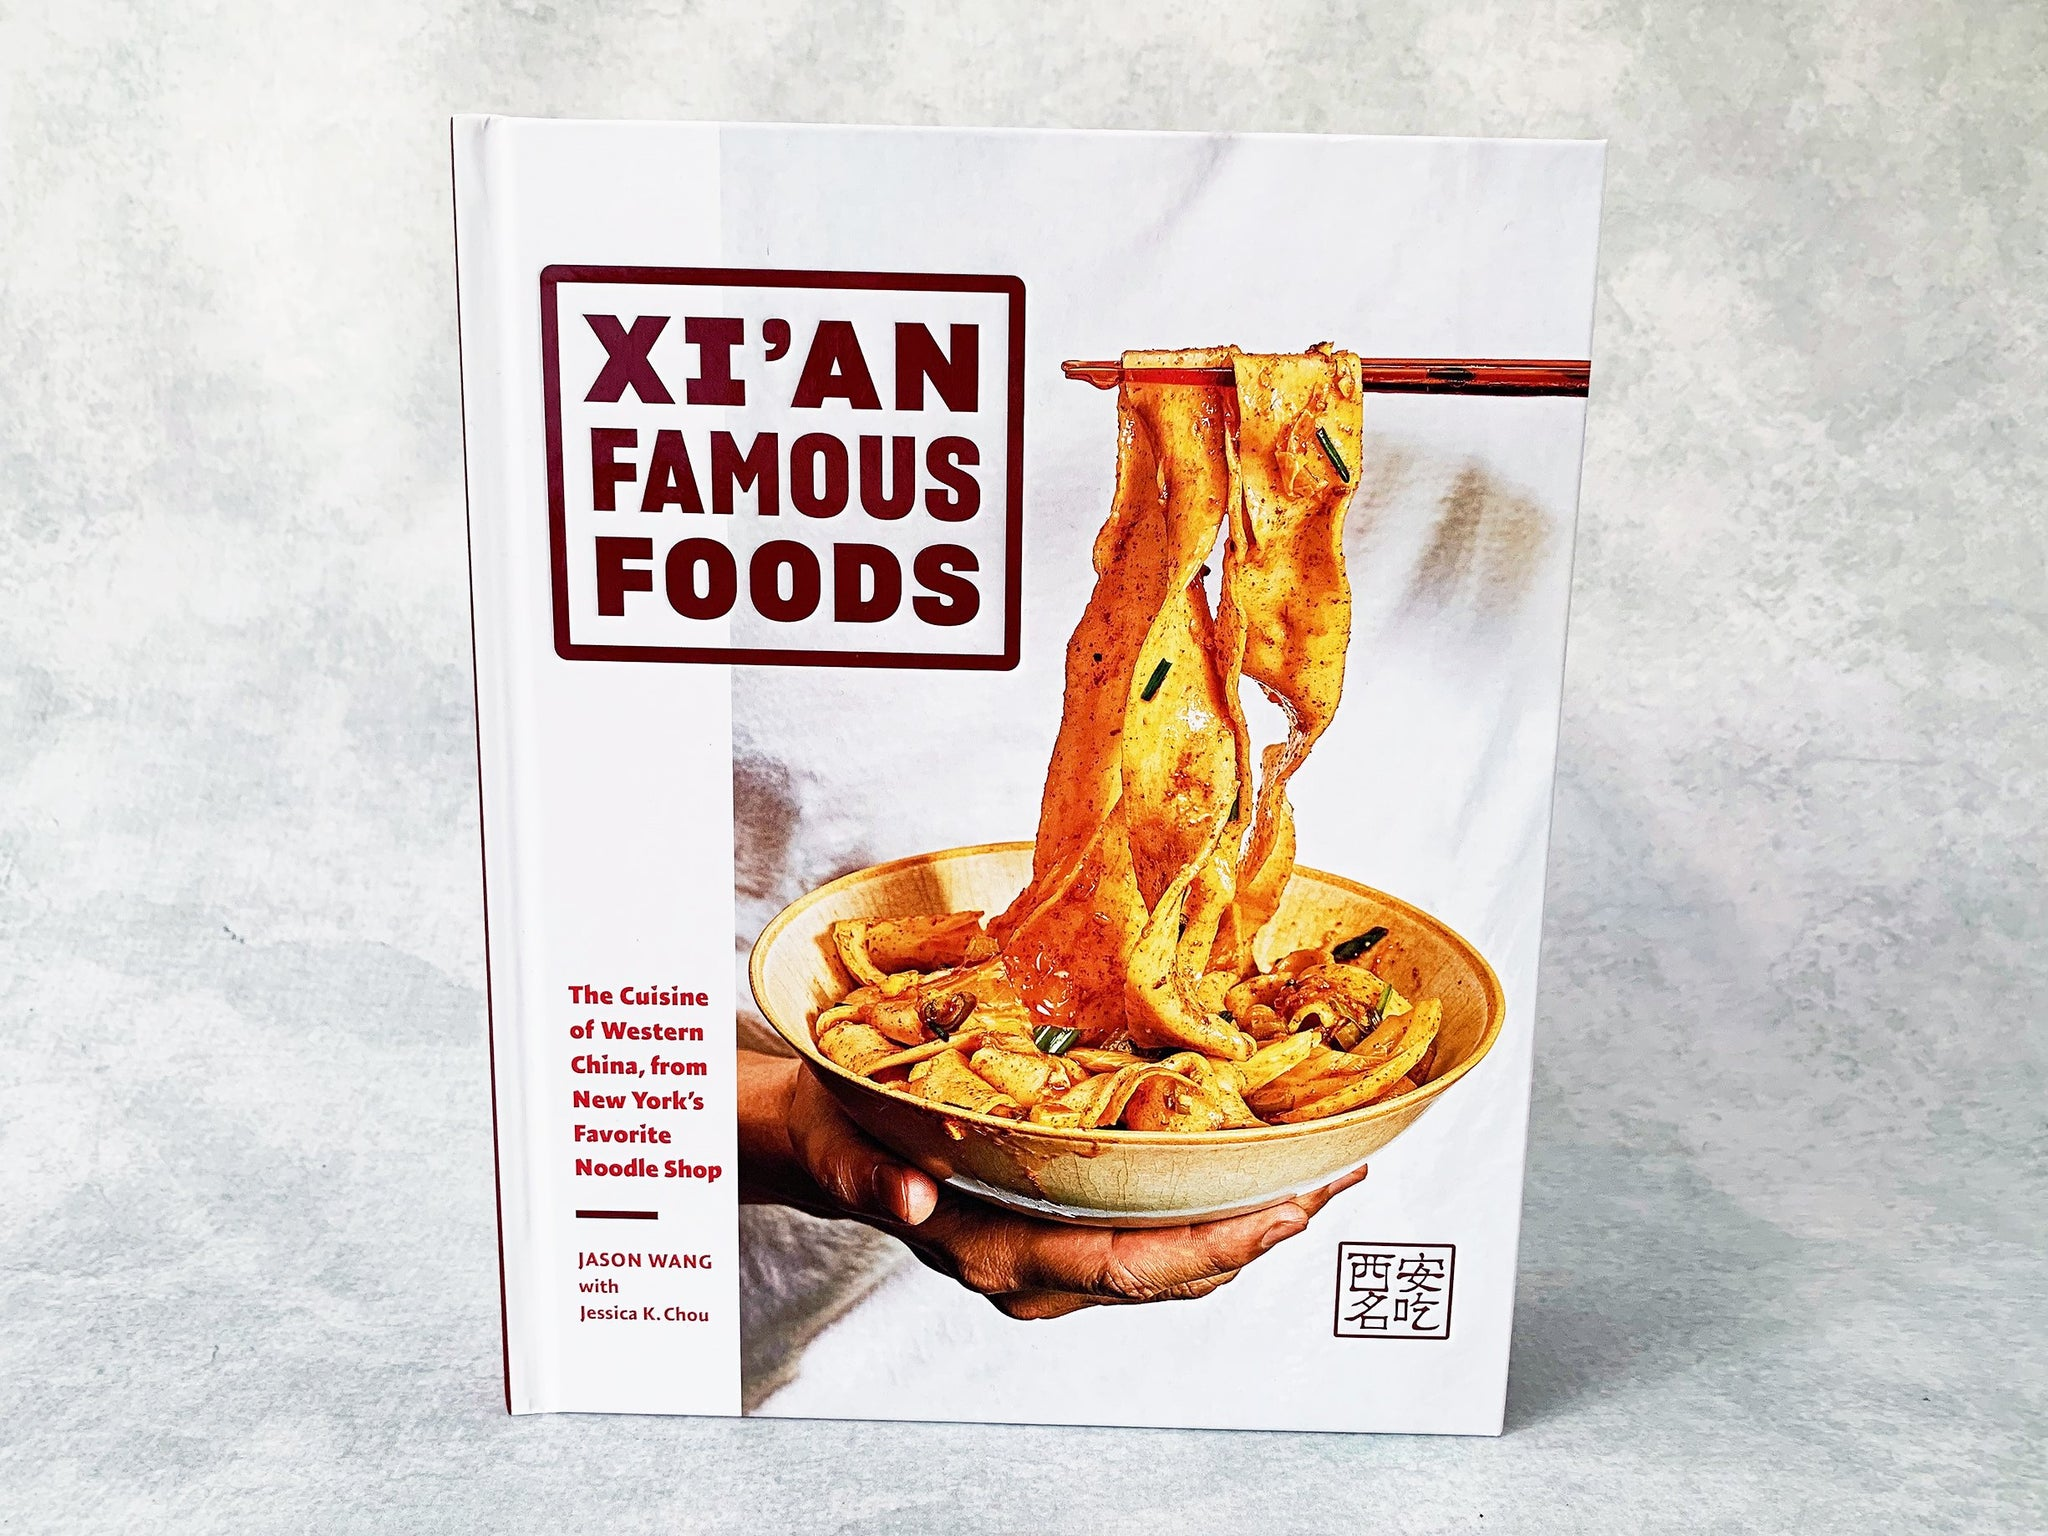 Xian Famous Foods cookbook